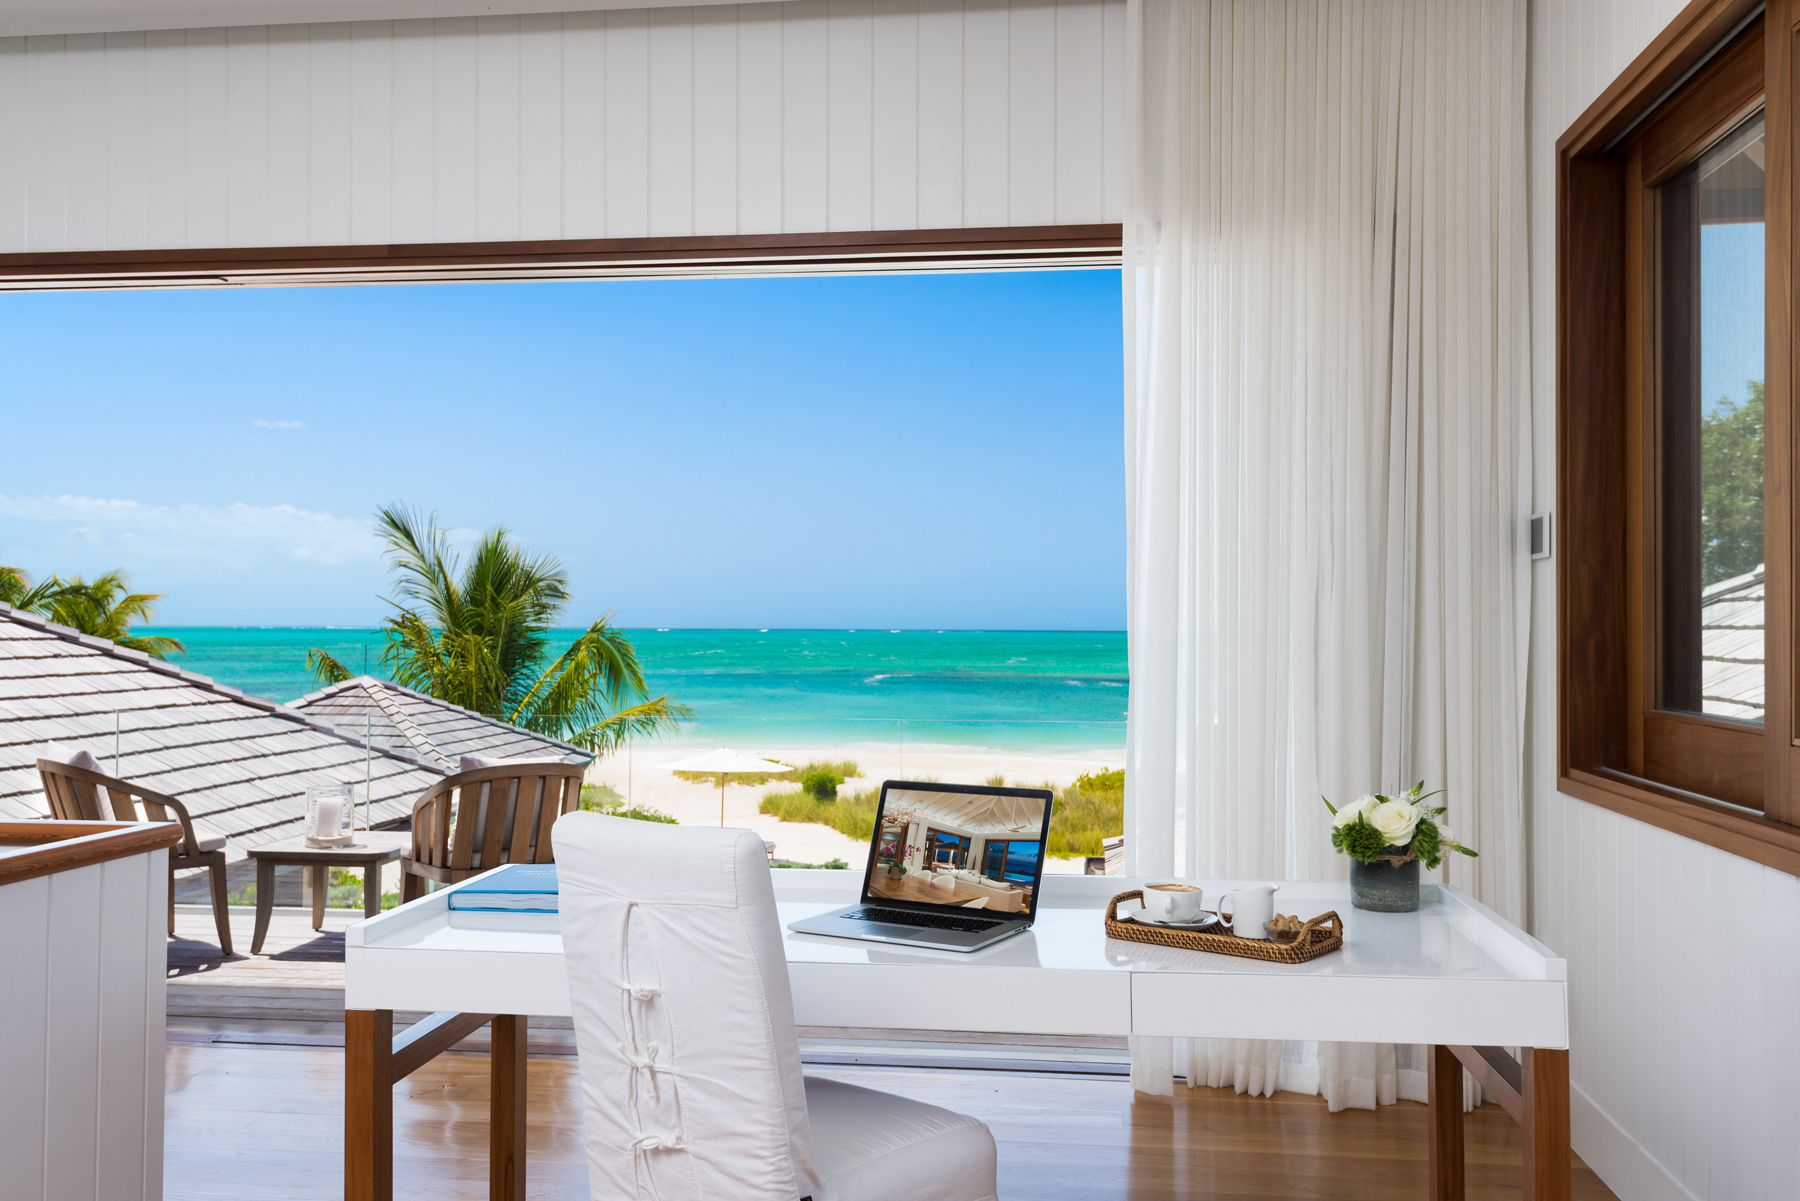 Additional photo for property listing at Serenity Villa Beachfront Parrot Cay, Parrot Cay TCI Îles Turques Et Caïques